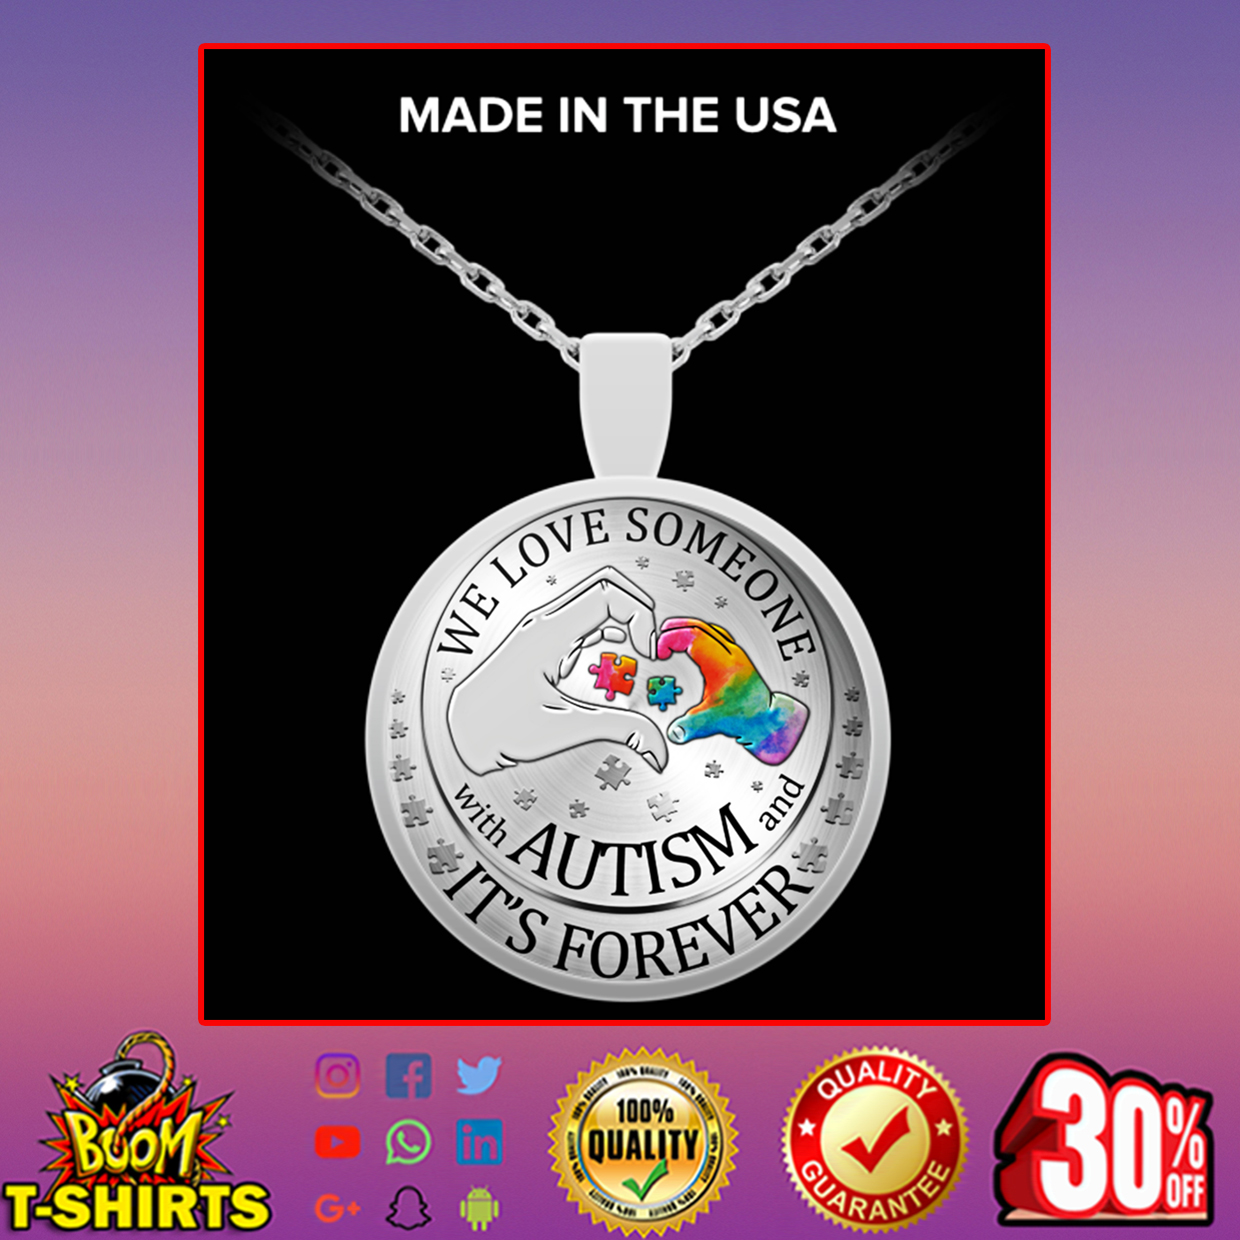 We love someone with autism and it's forever necklace